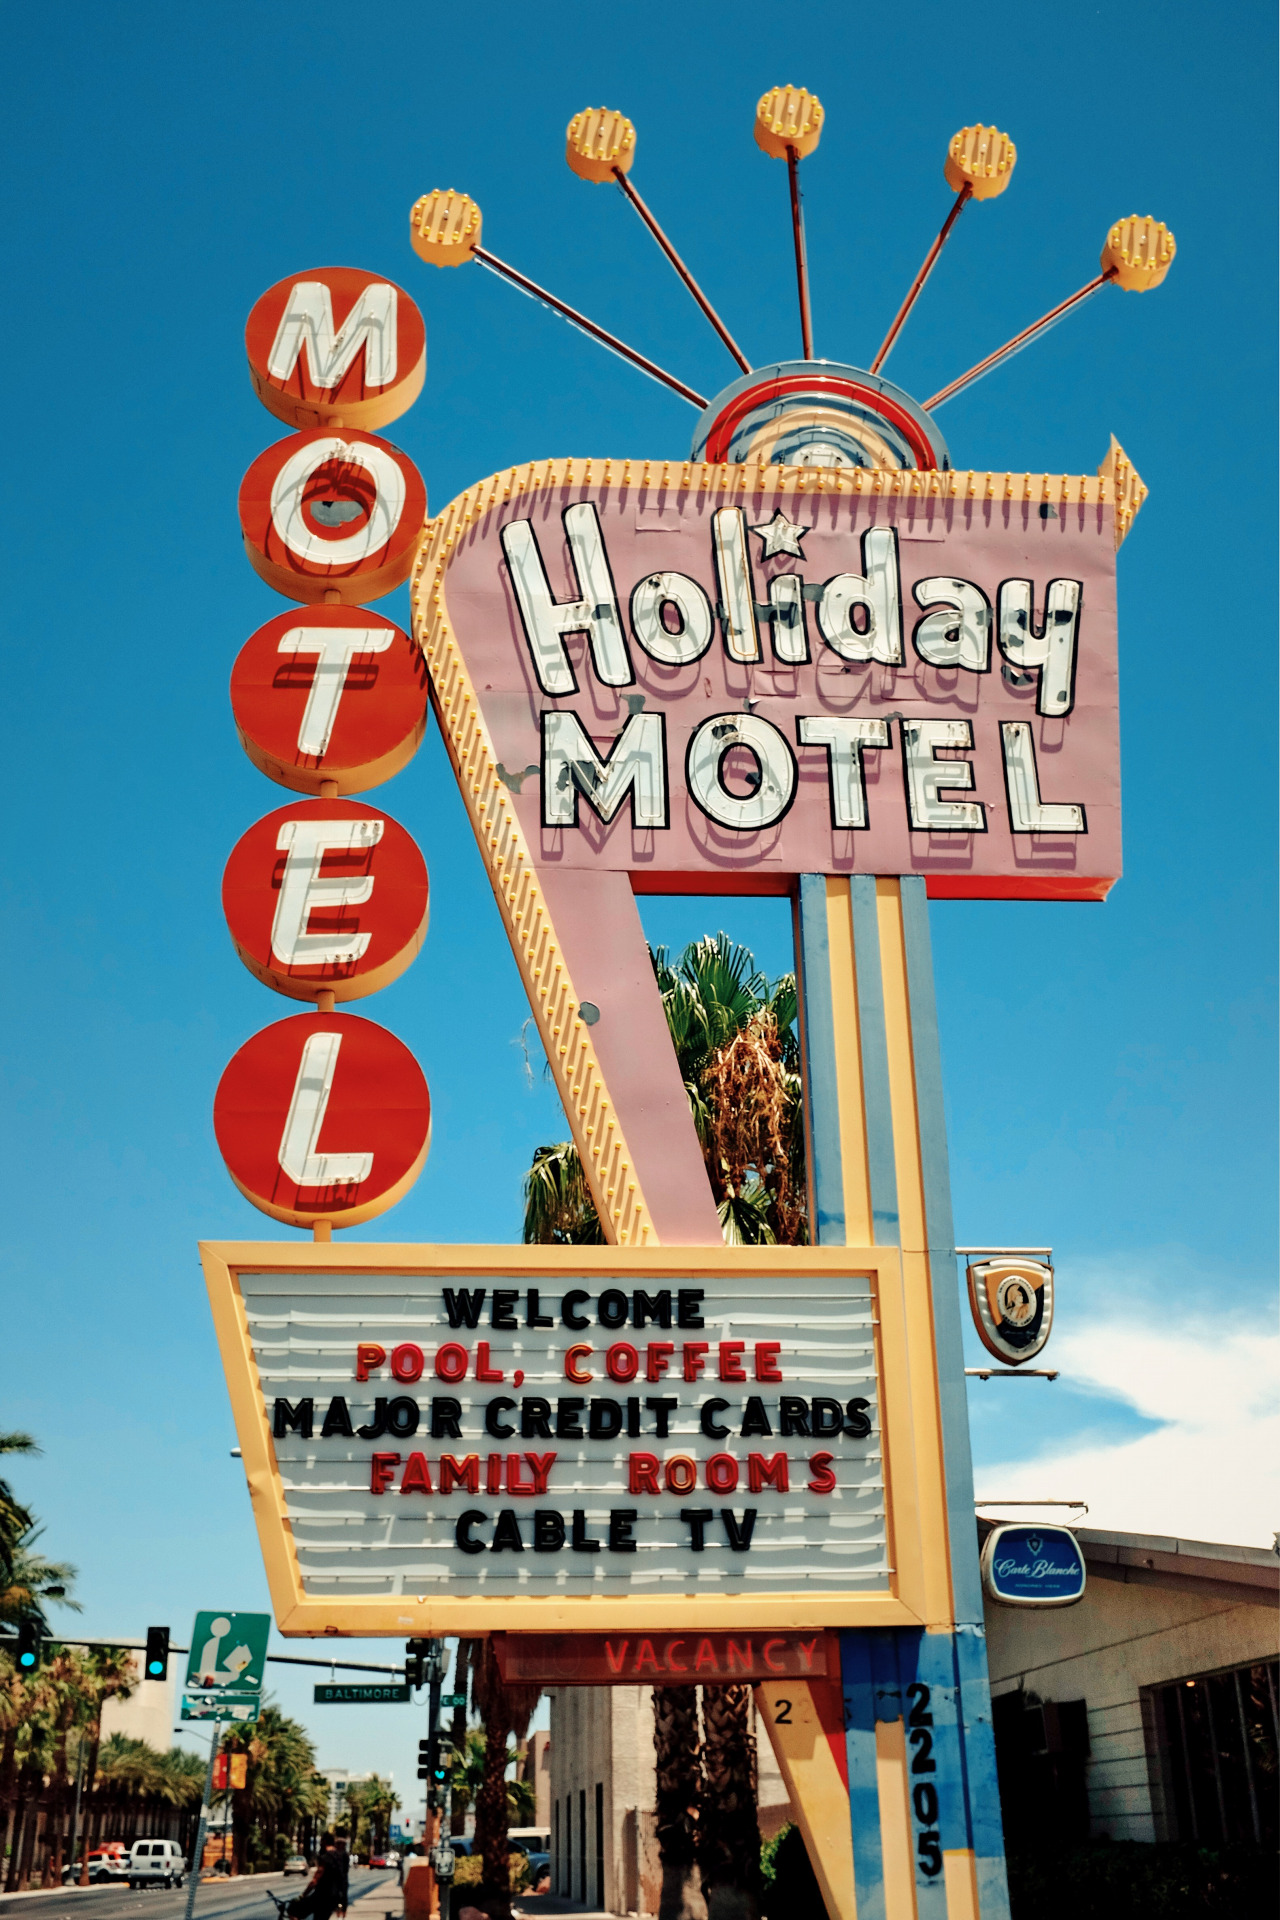 Holiday Motel - hotelroomsearch.net